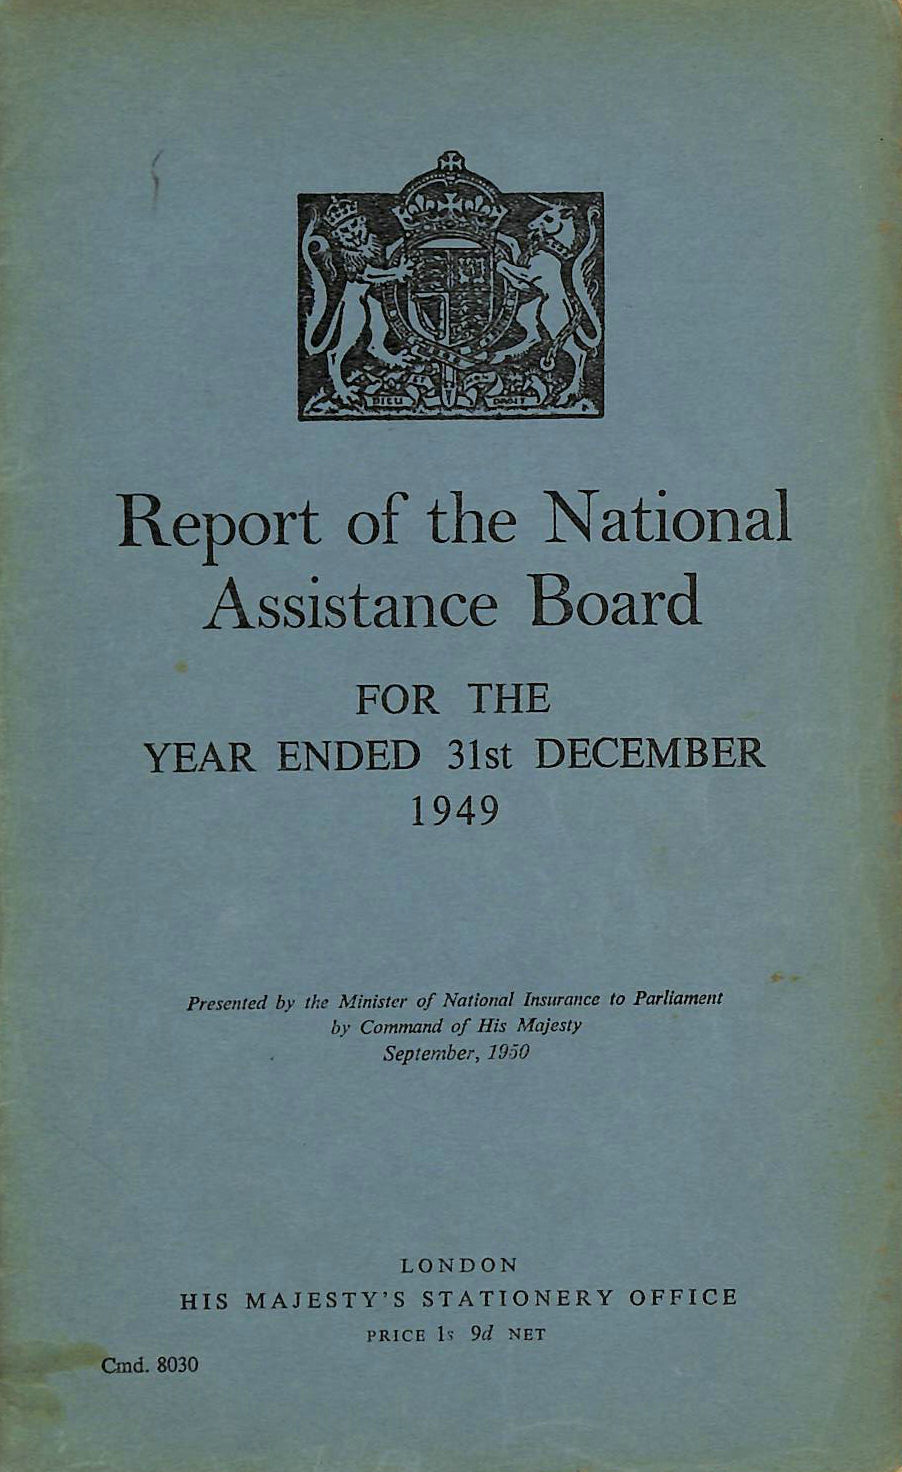 Image for Report of the National Assistance Board 1949